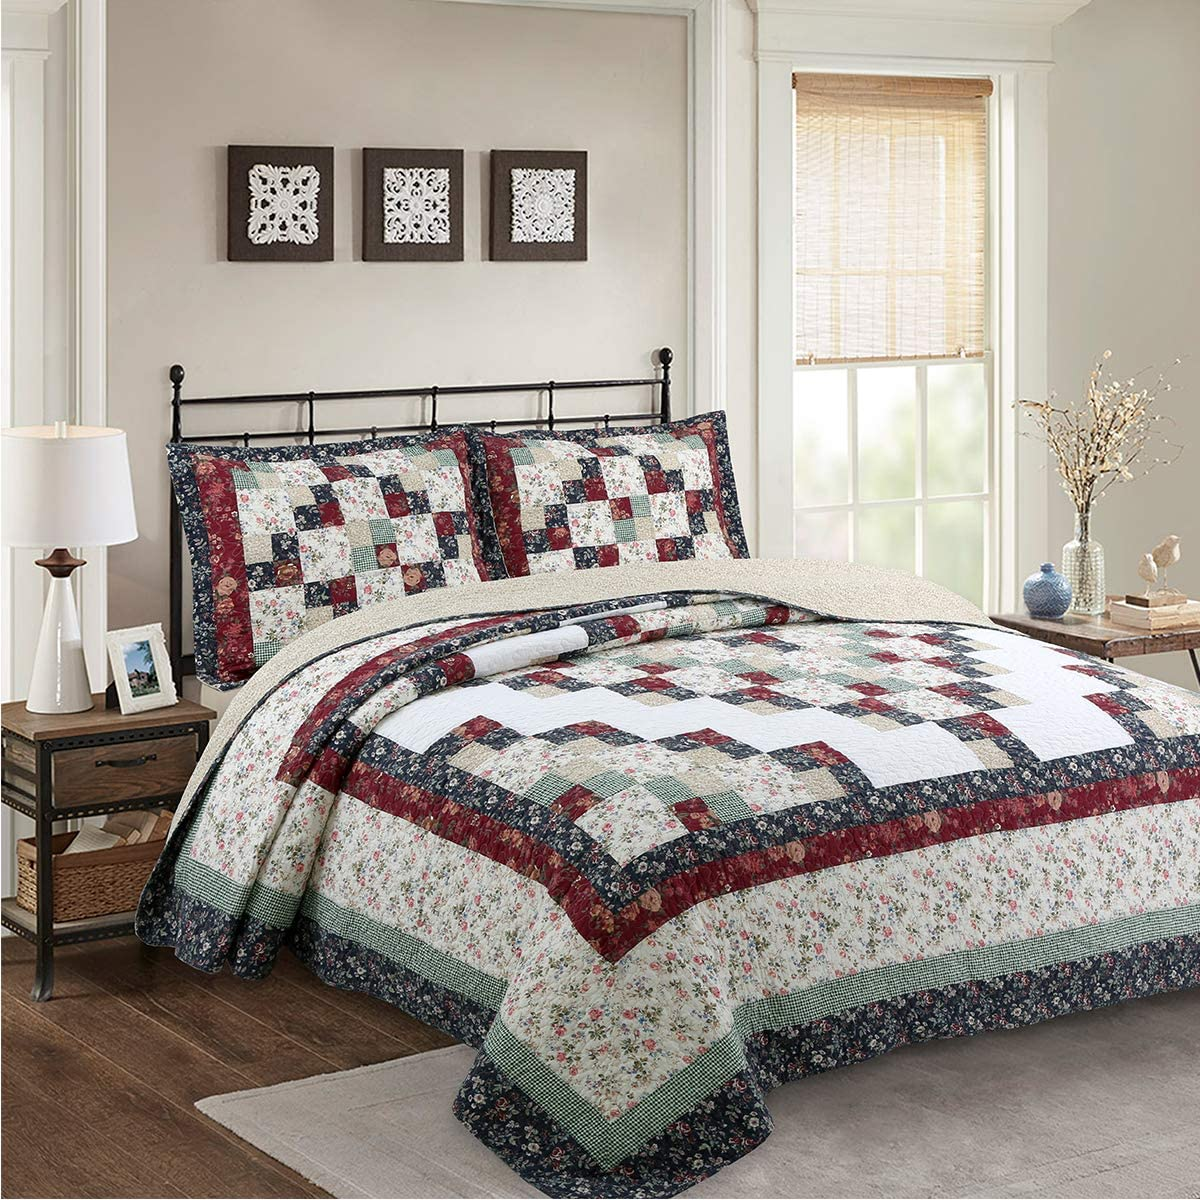 NIUDECOR 2-Piece Printed Boho Quilt Set Cotton Patchwork Coverlet Set, 1 Quilt and 1 Pillow Sham, Red, Twin